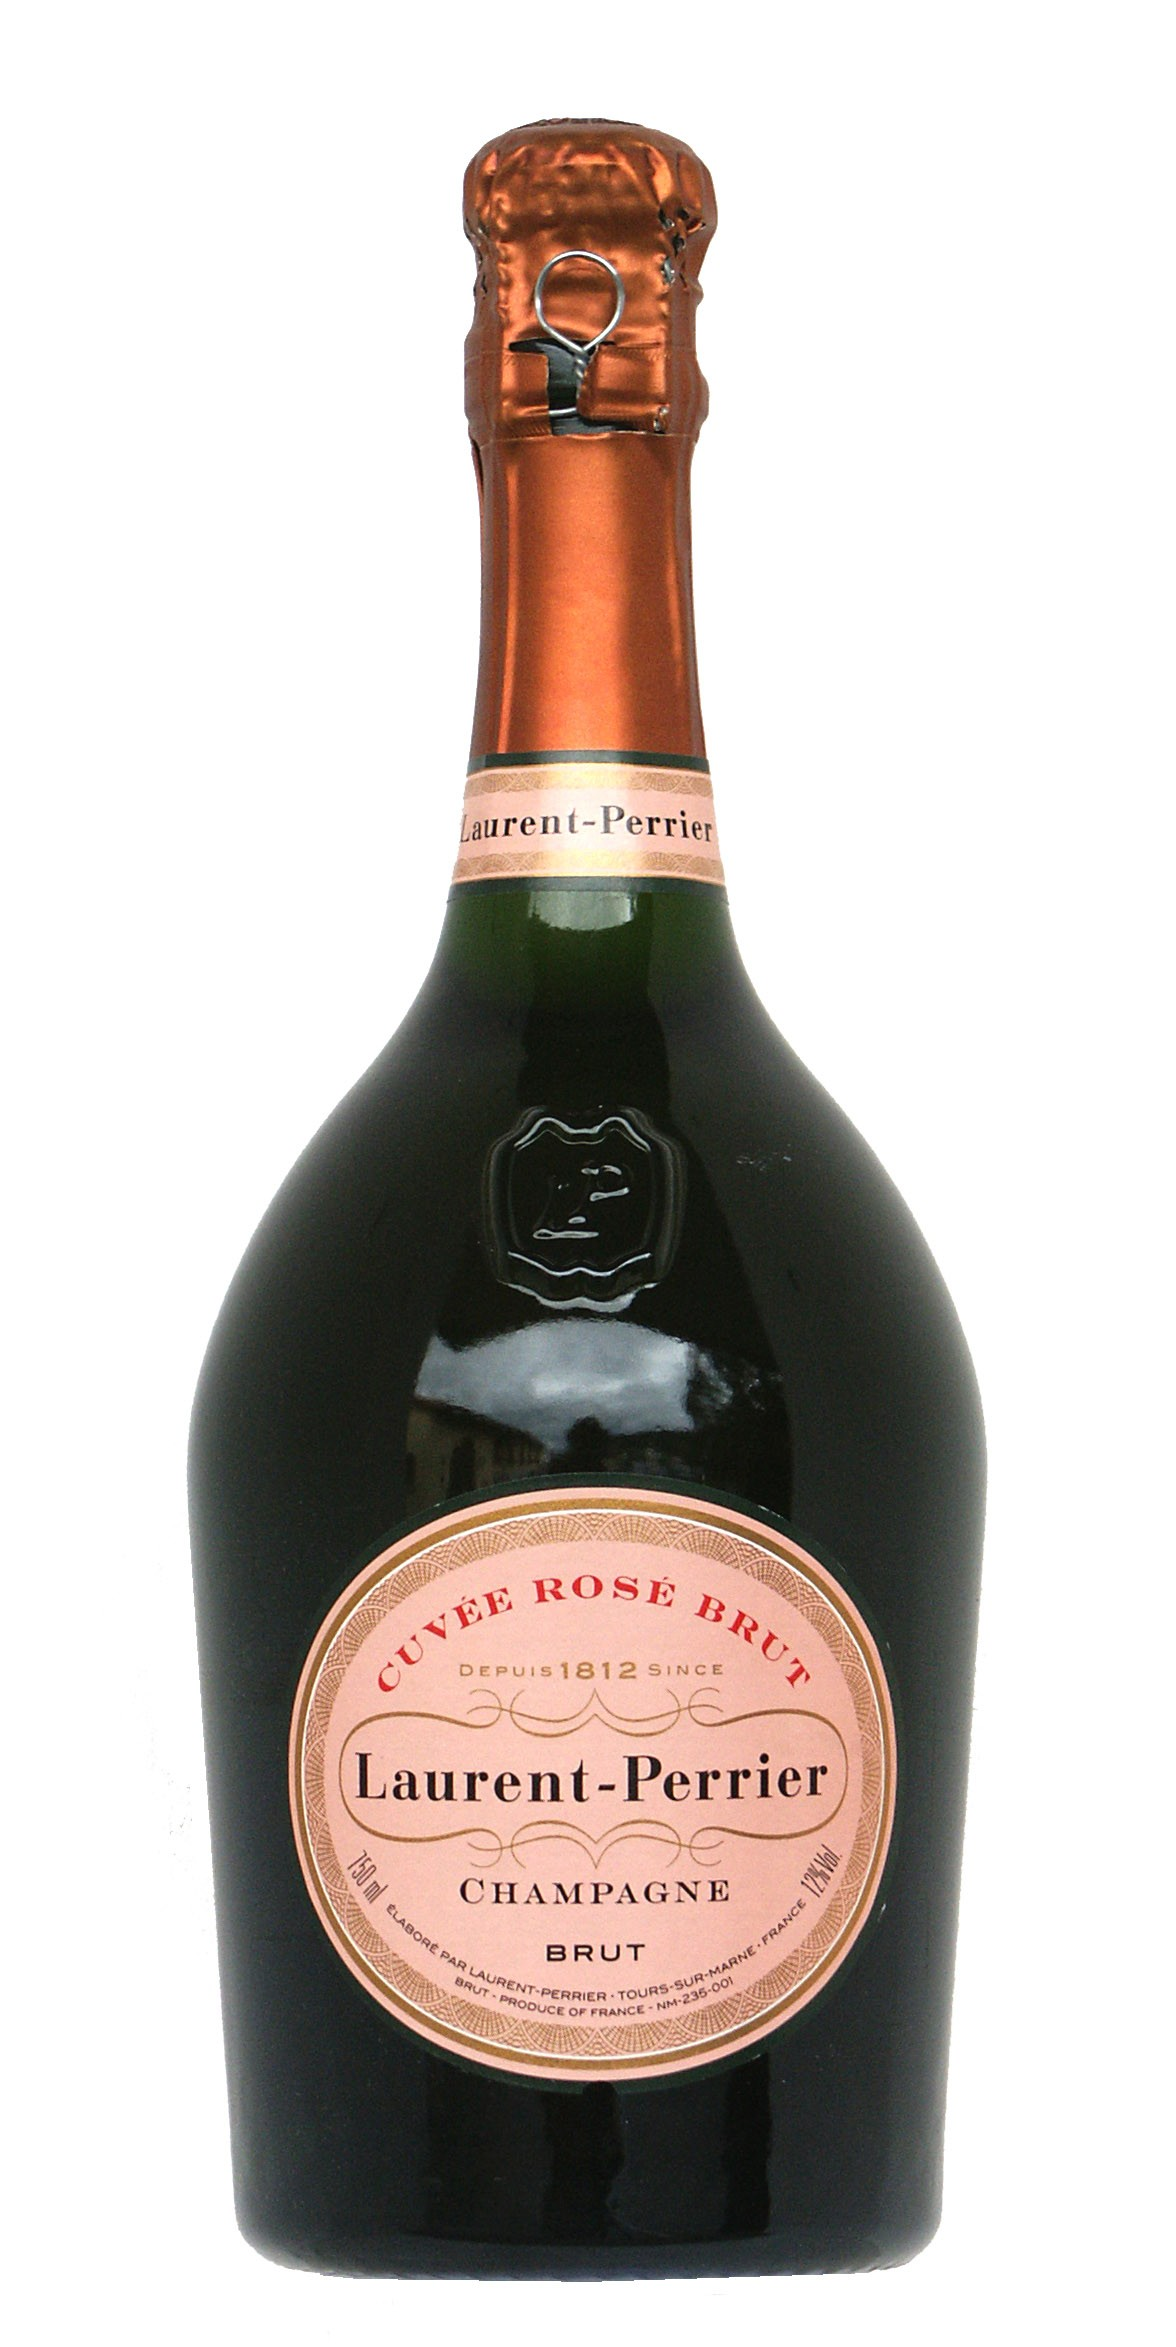 Laurent-Perrier - Cuvée Rosé Brut